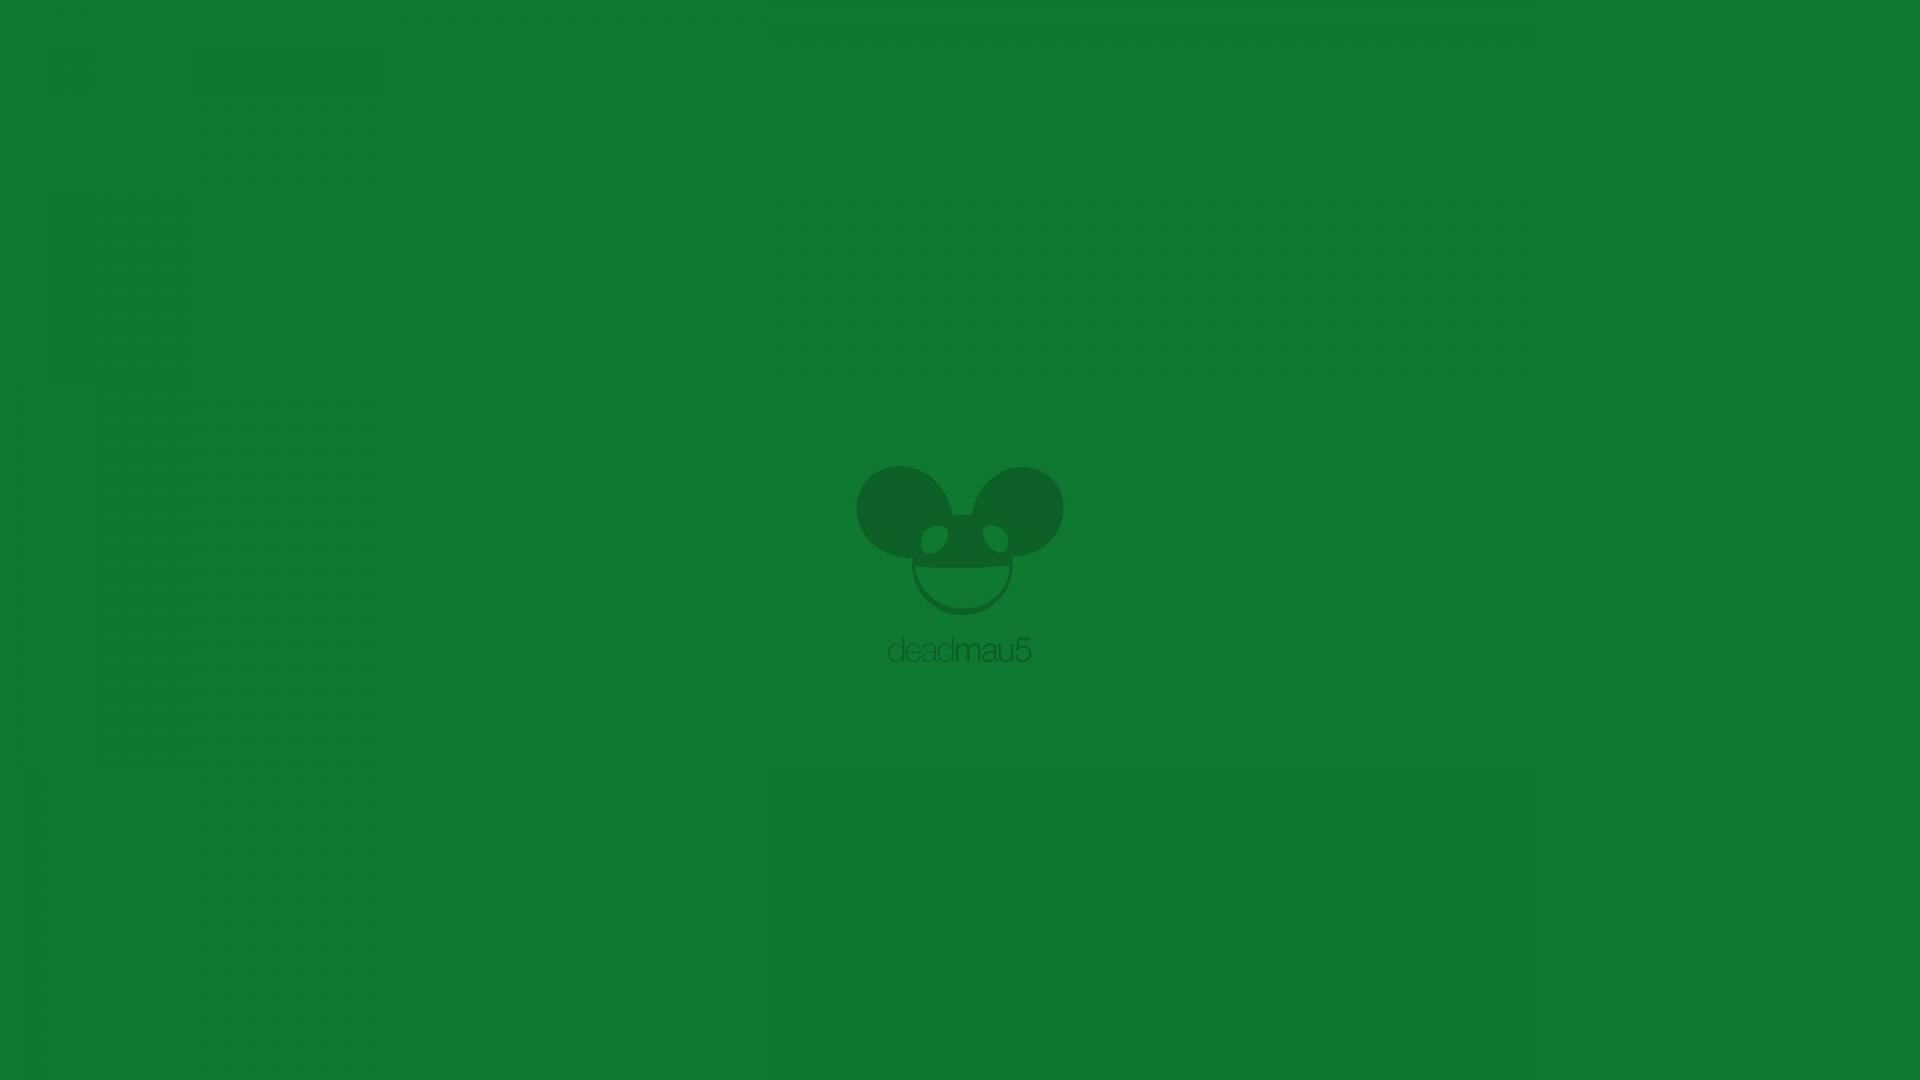 Minimalistic deadmau5 simple green text wallpaper